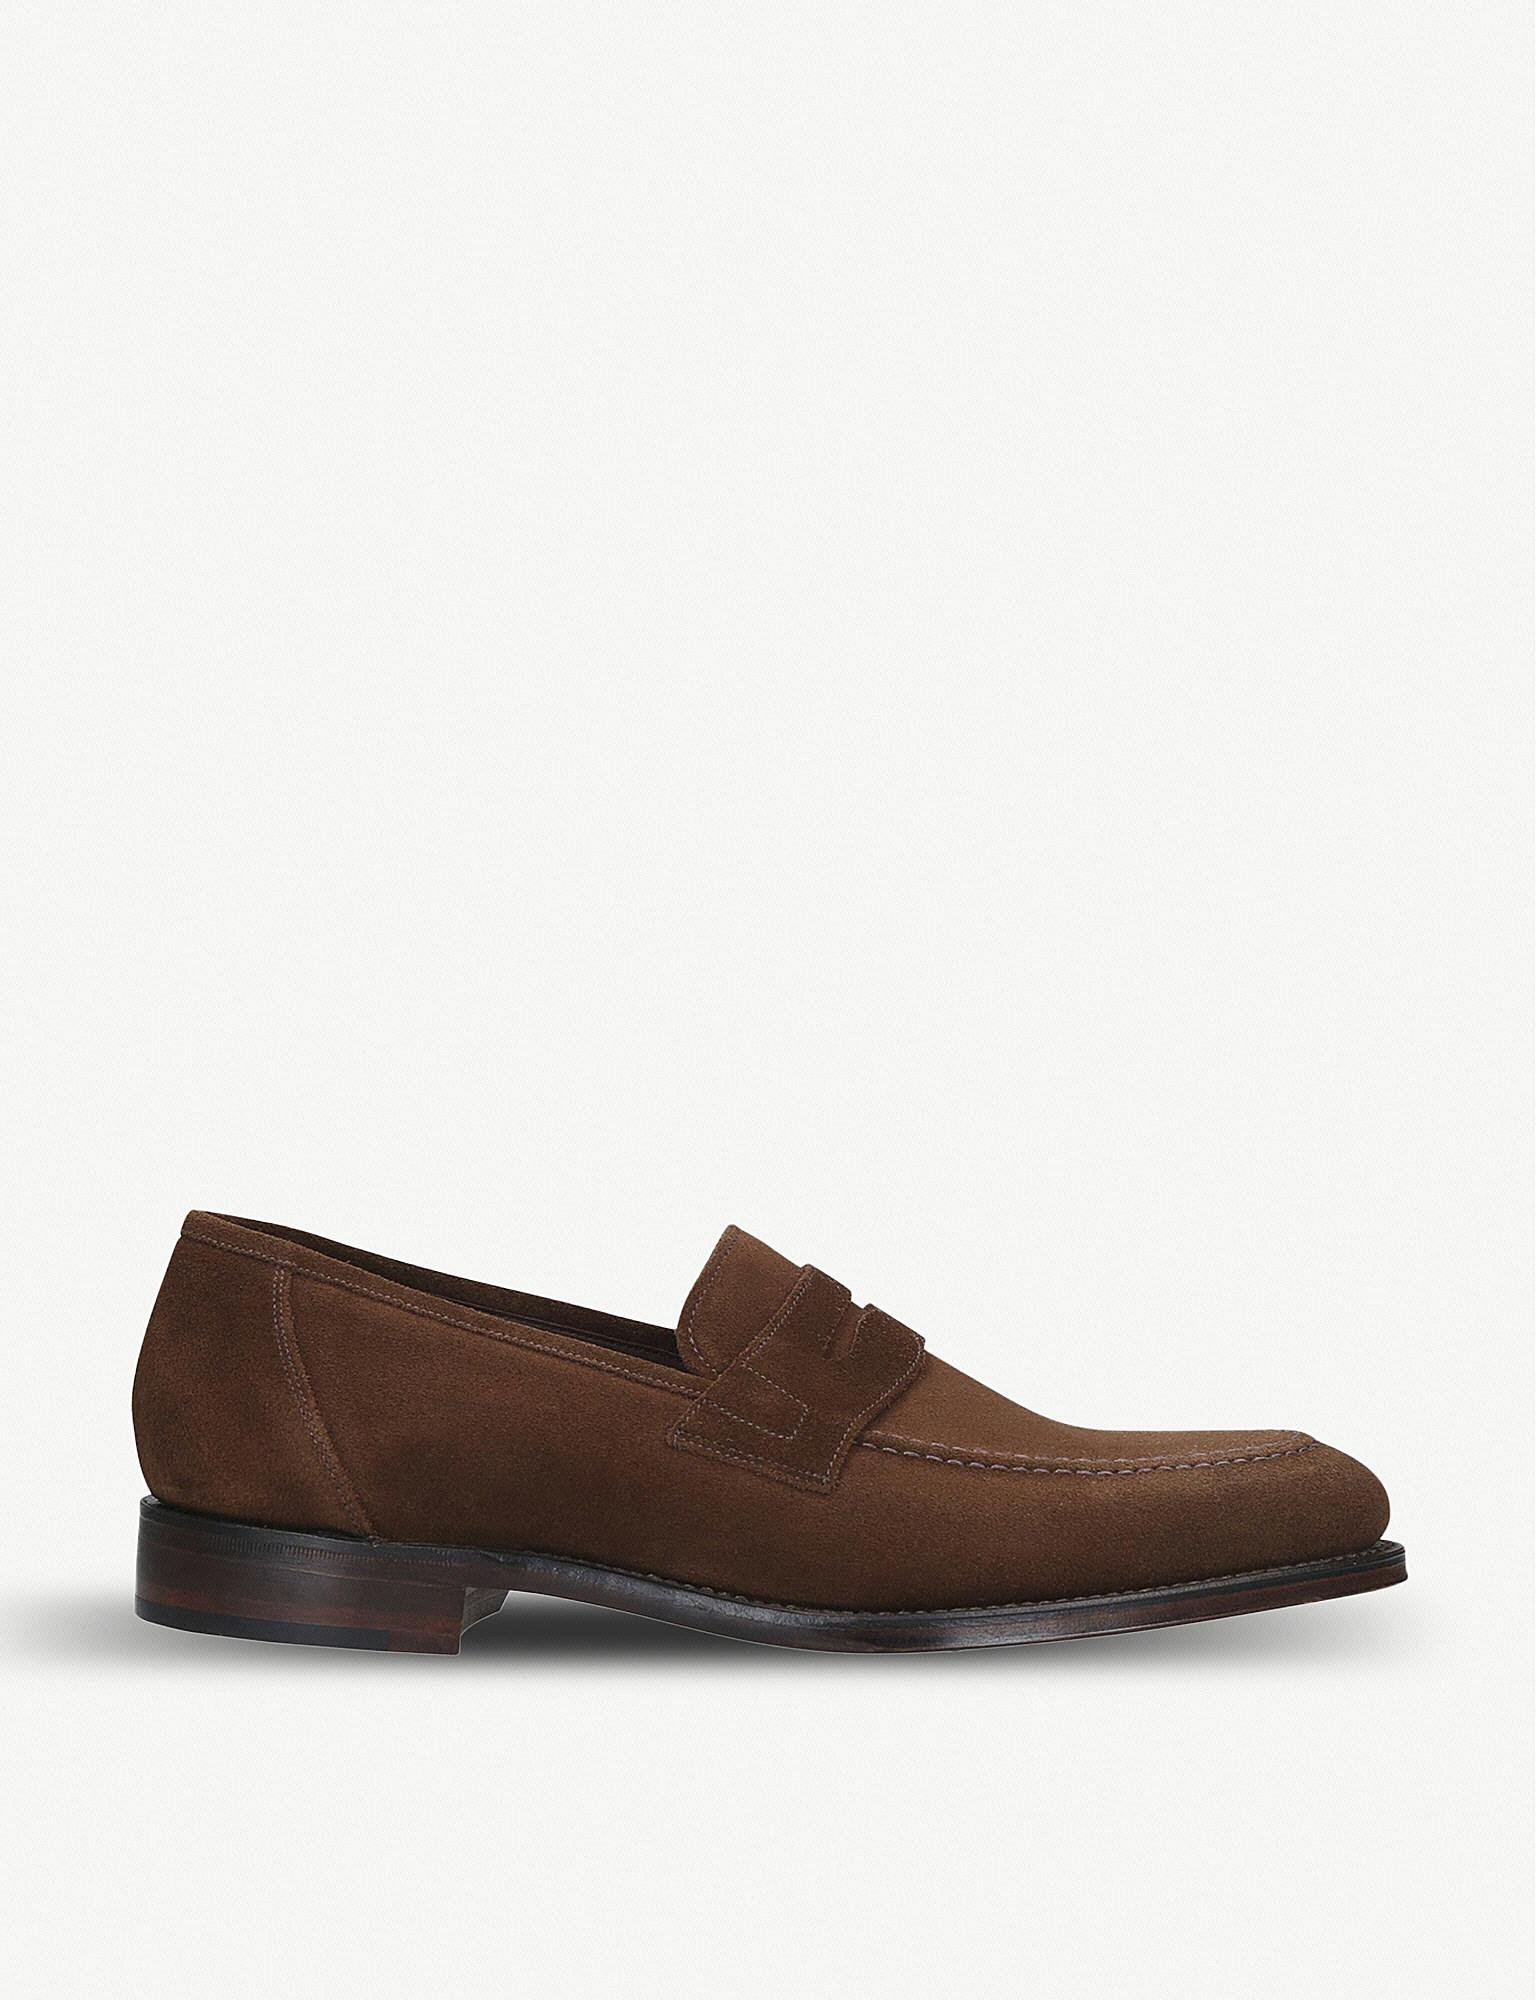 8318d7646c0 Loake Anson Suede Penny Loafers in Brown for Men - Lyst